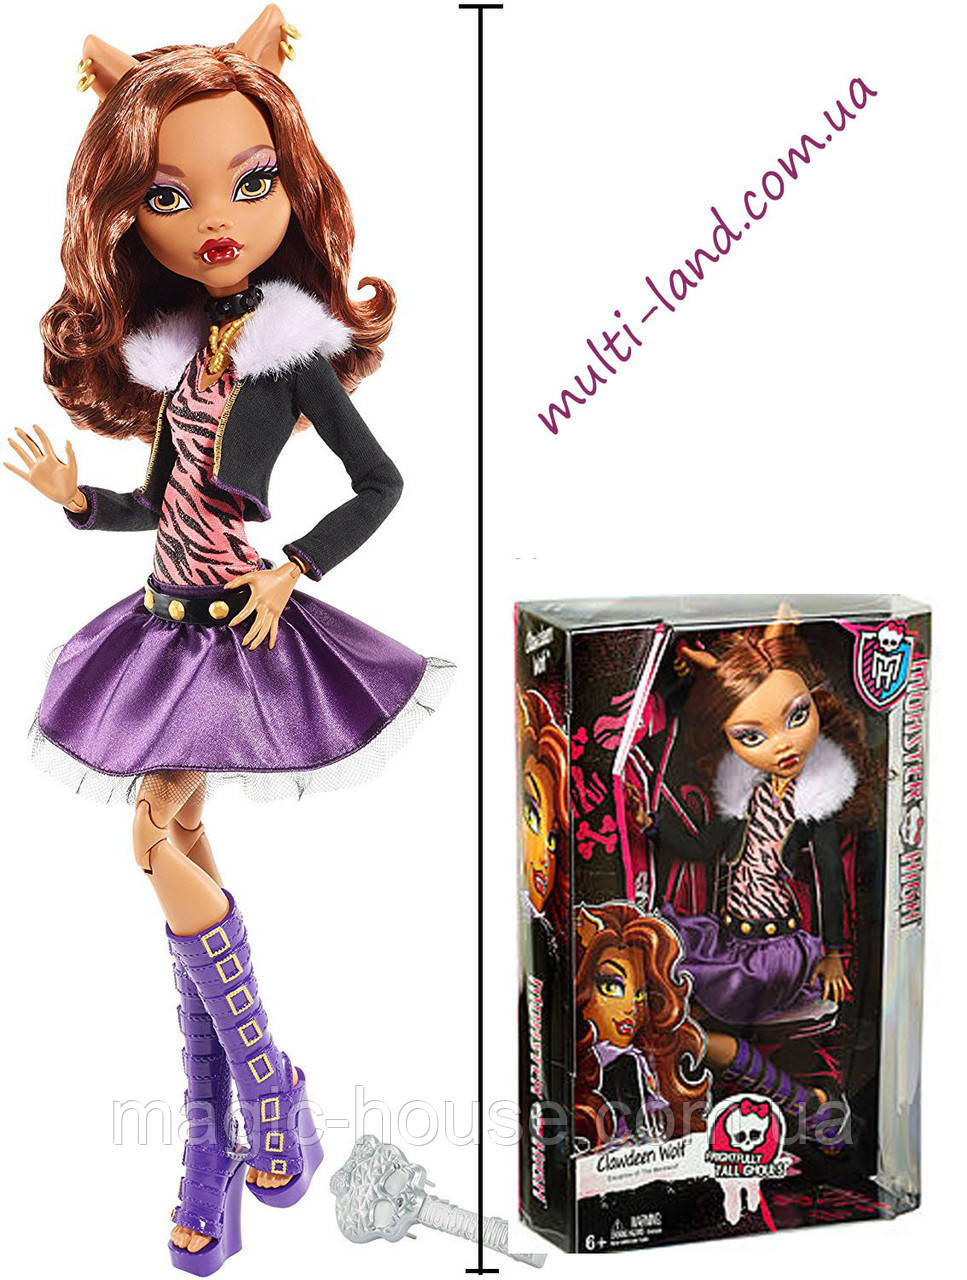 Кукла Монстр Хай Клодин Вульф 42 см Страшно огромные Monster High Frightfully Tall Ghouls Clawdeen Wolf Doll